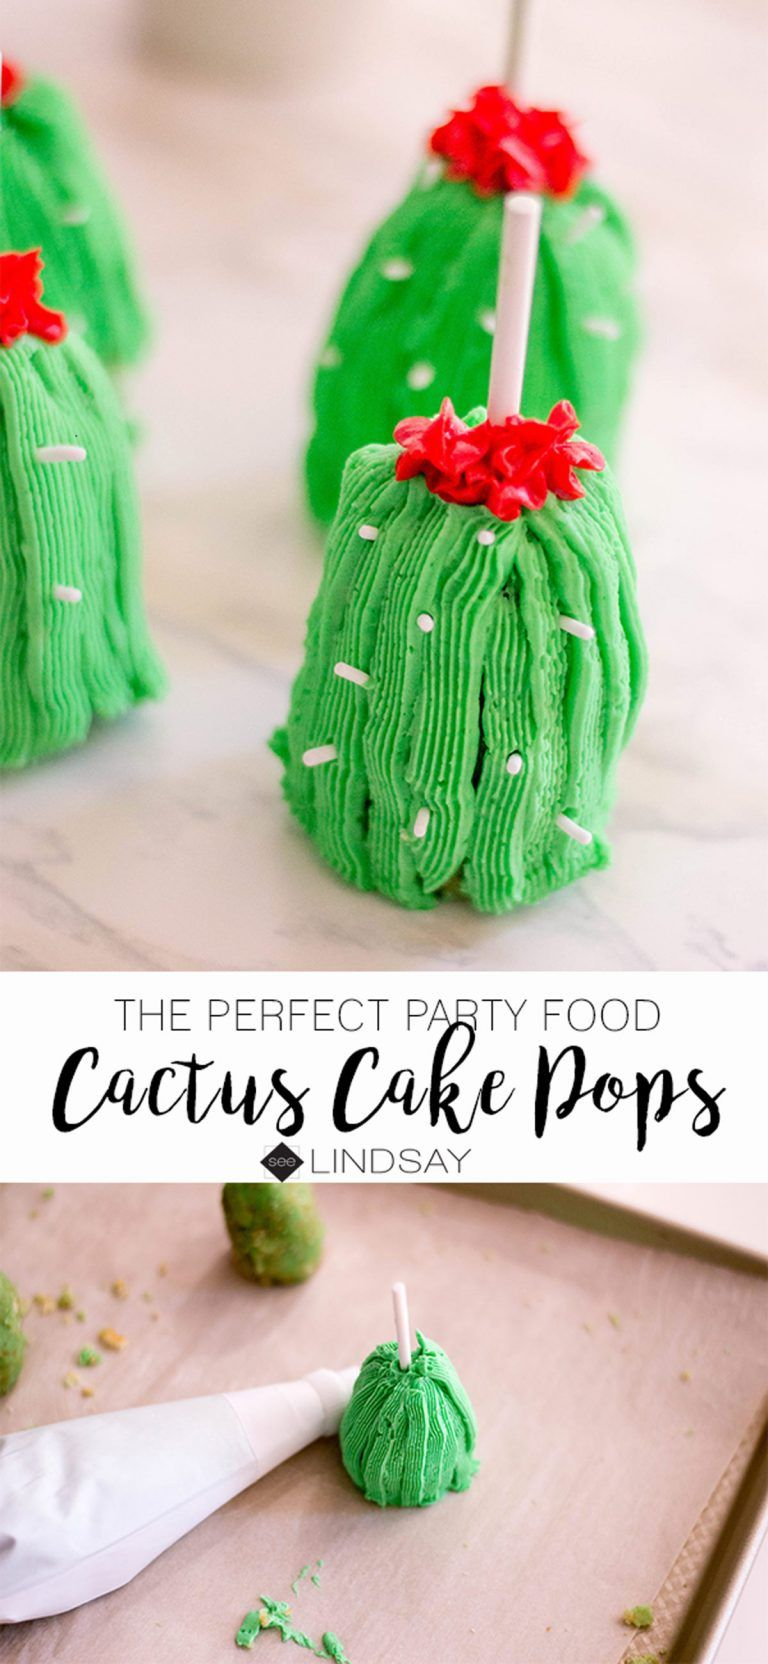 Cactus Cake Pops Recipe For A Perfect Party Recipe Cactus Cake Cake Pops Cake Pop Recipe